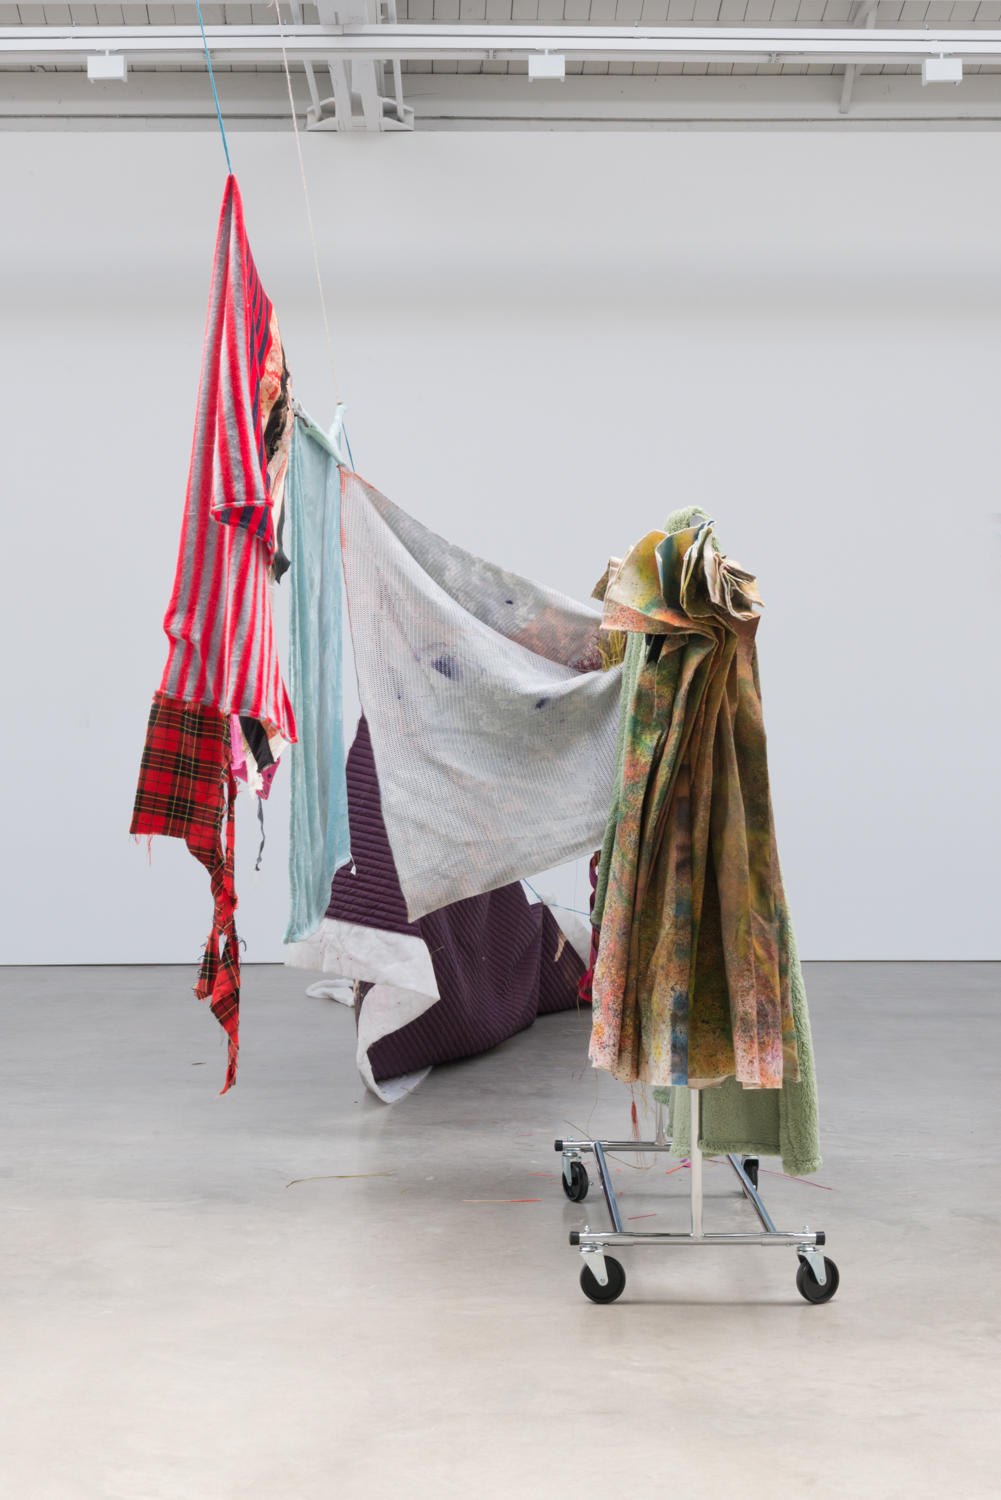 Eric Mack  Come Live With Me Angel  (Alternate view) 2016 Rope, straight pins, acrylic on plush microfiber blankets, polyester fabrics, dye, bleached silk, decorative bouquet, and aluminum clothing rack 94h x 300w x 52d in ENM002